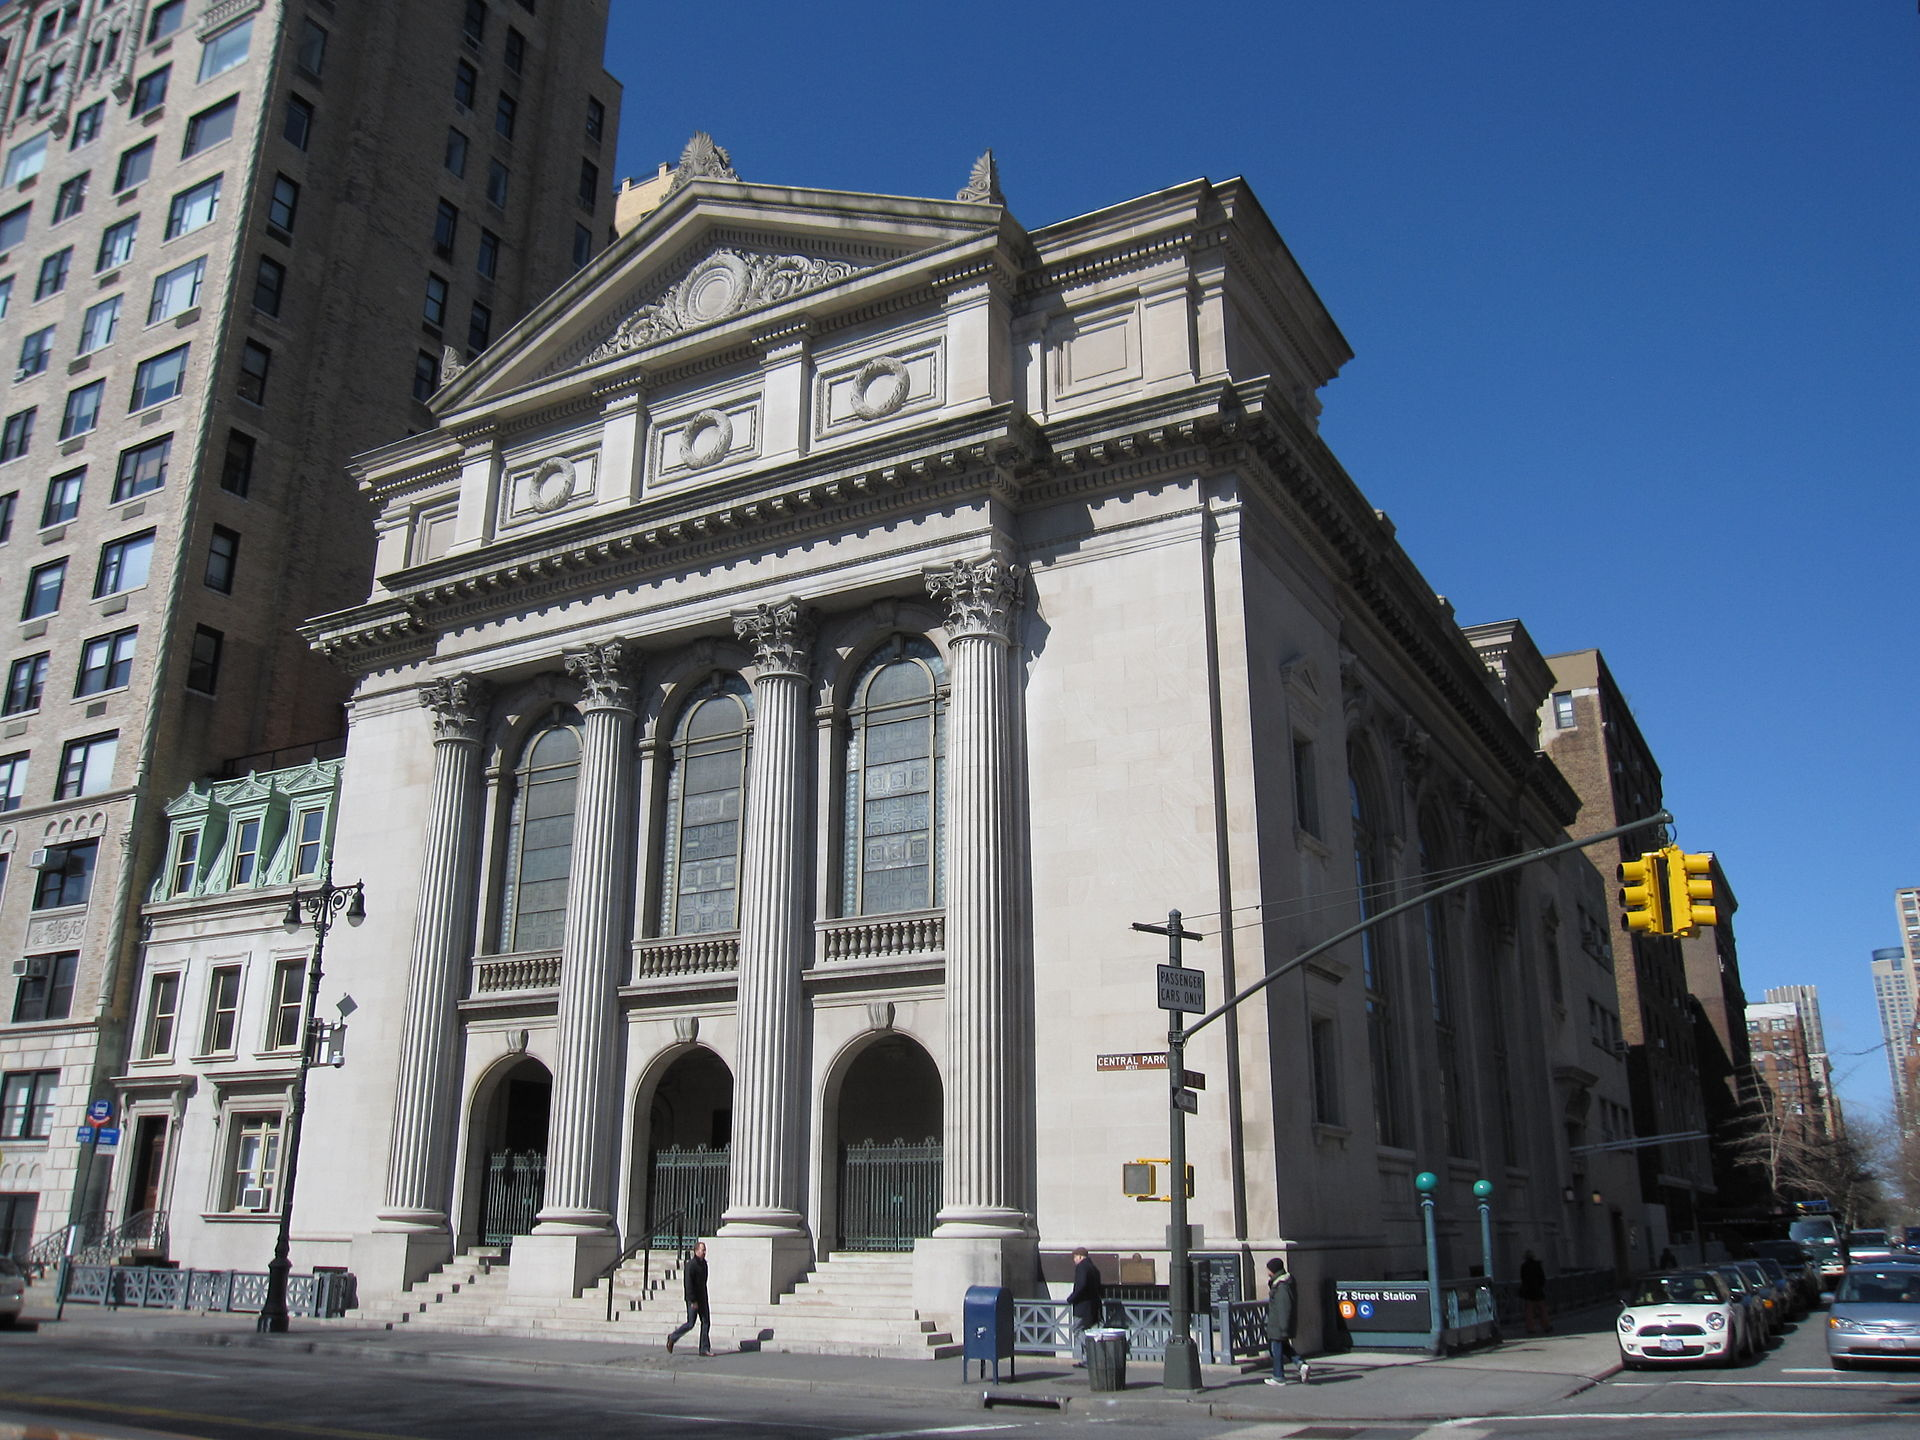 Established in 1654, Congregation Shearith Israel is the oldest congregation in North America. It built this temple in 1897. Photo: Wikimedia Commons